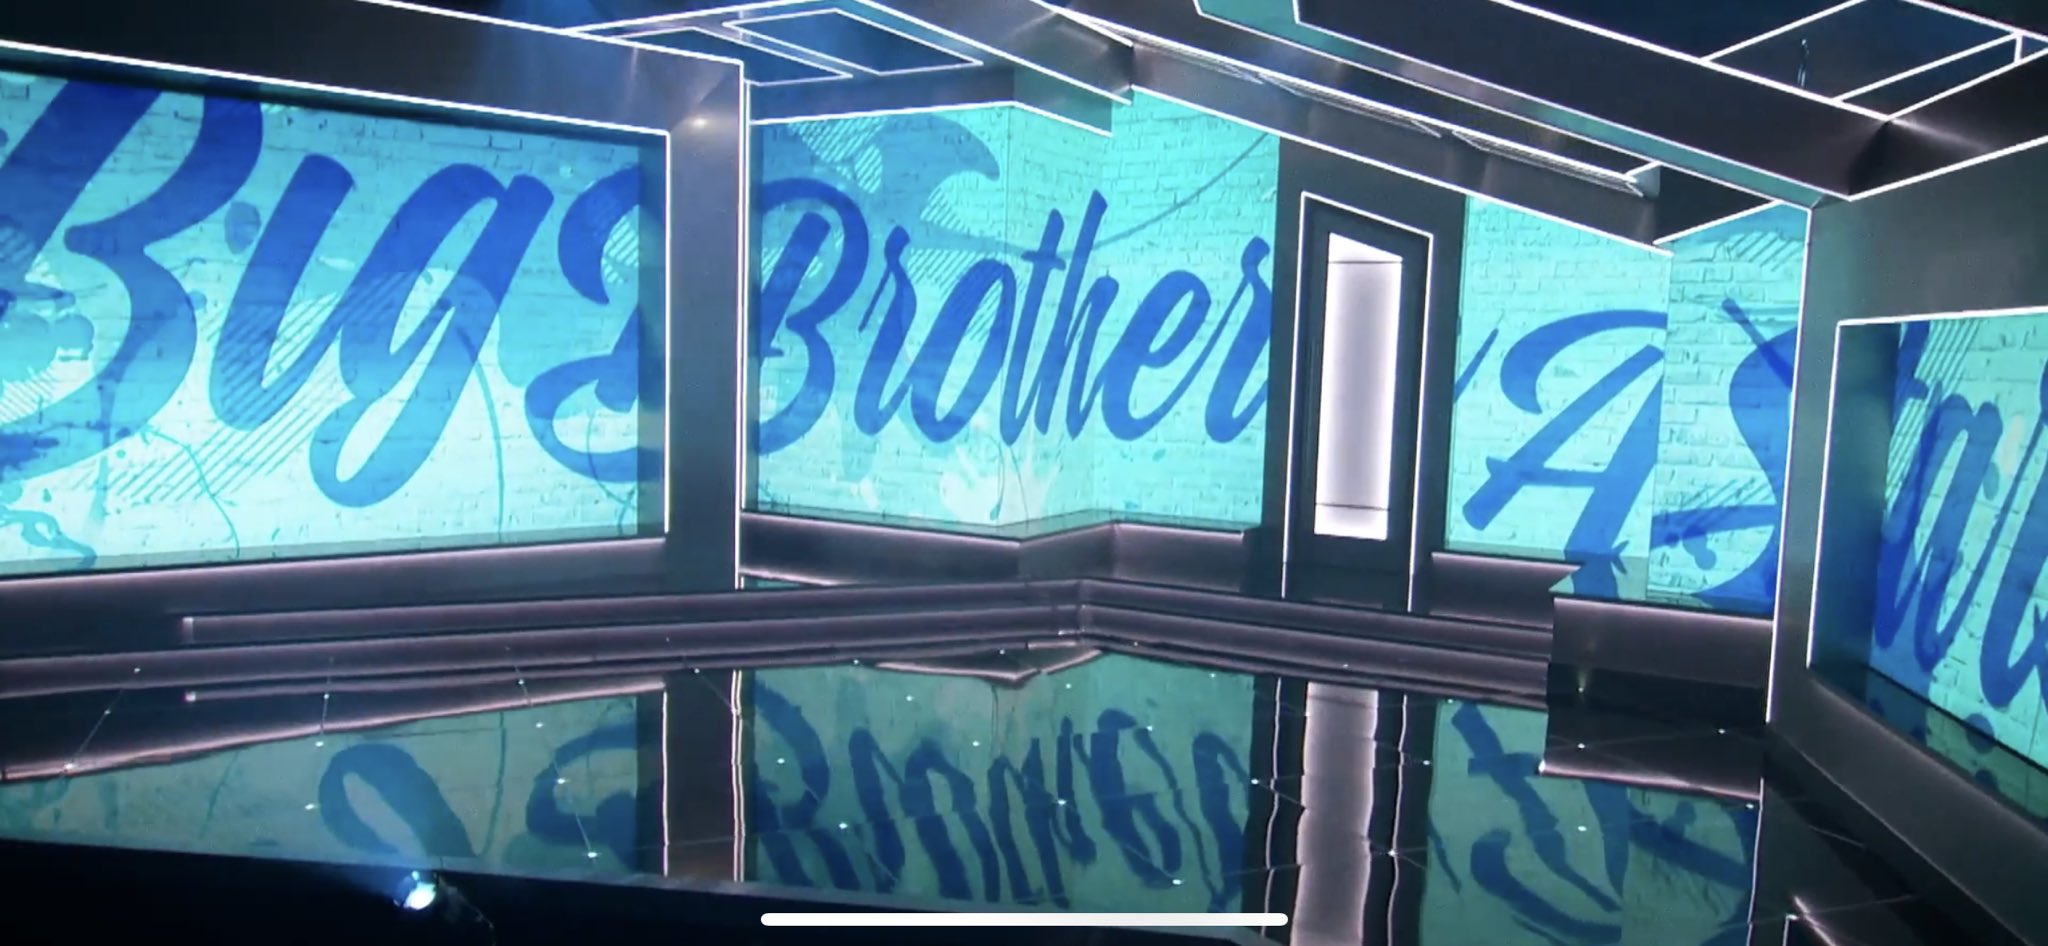 Big Brother 22 front of the house 03